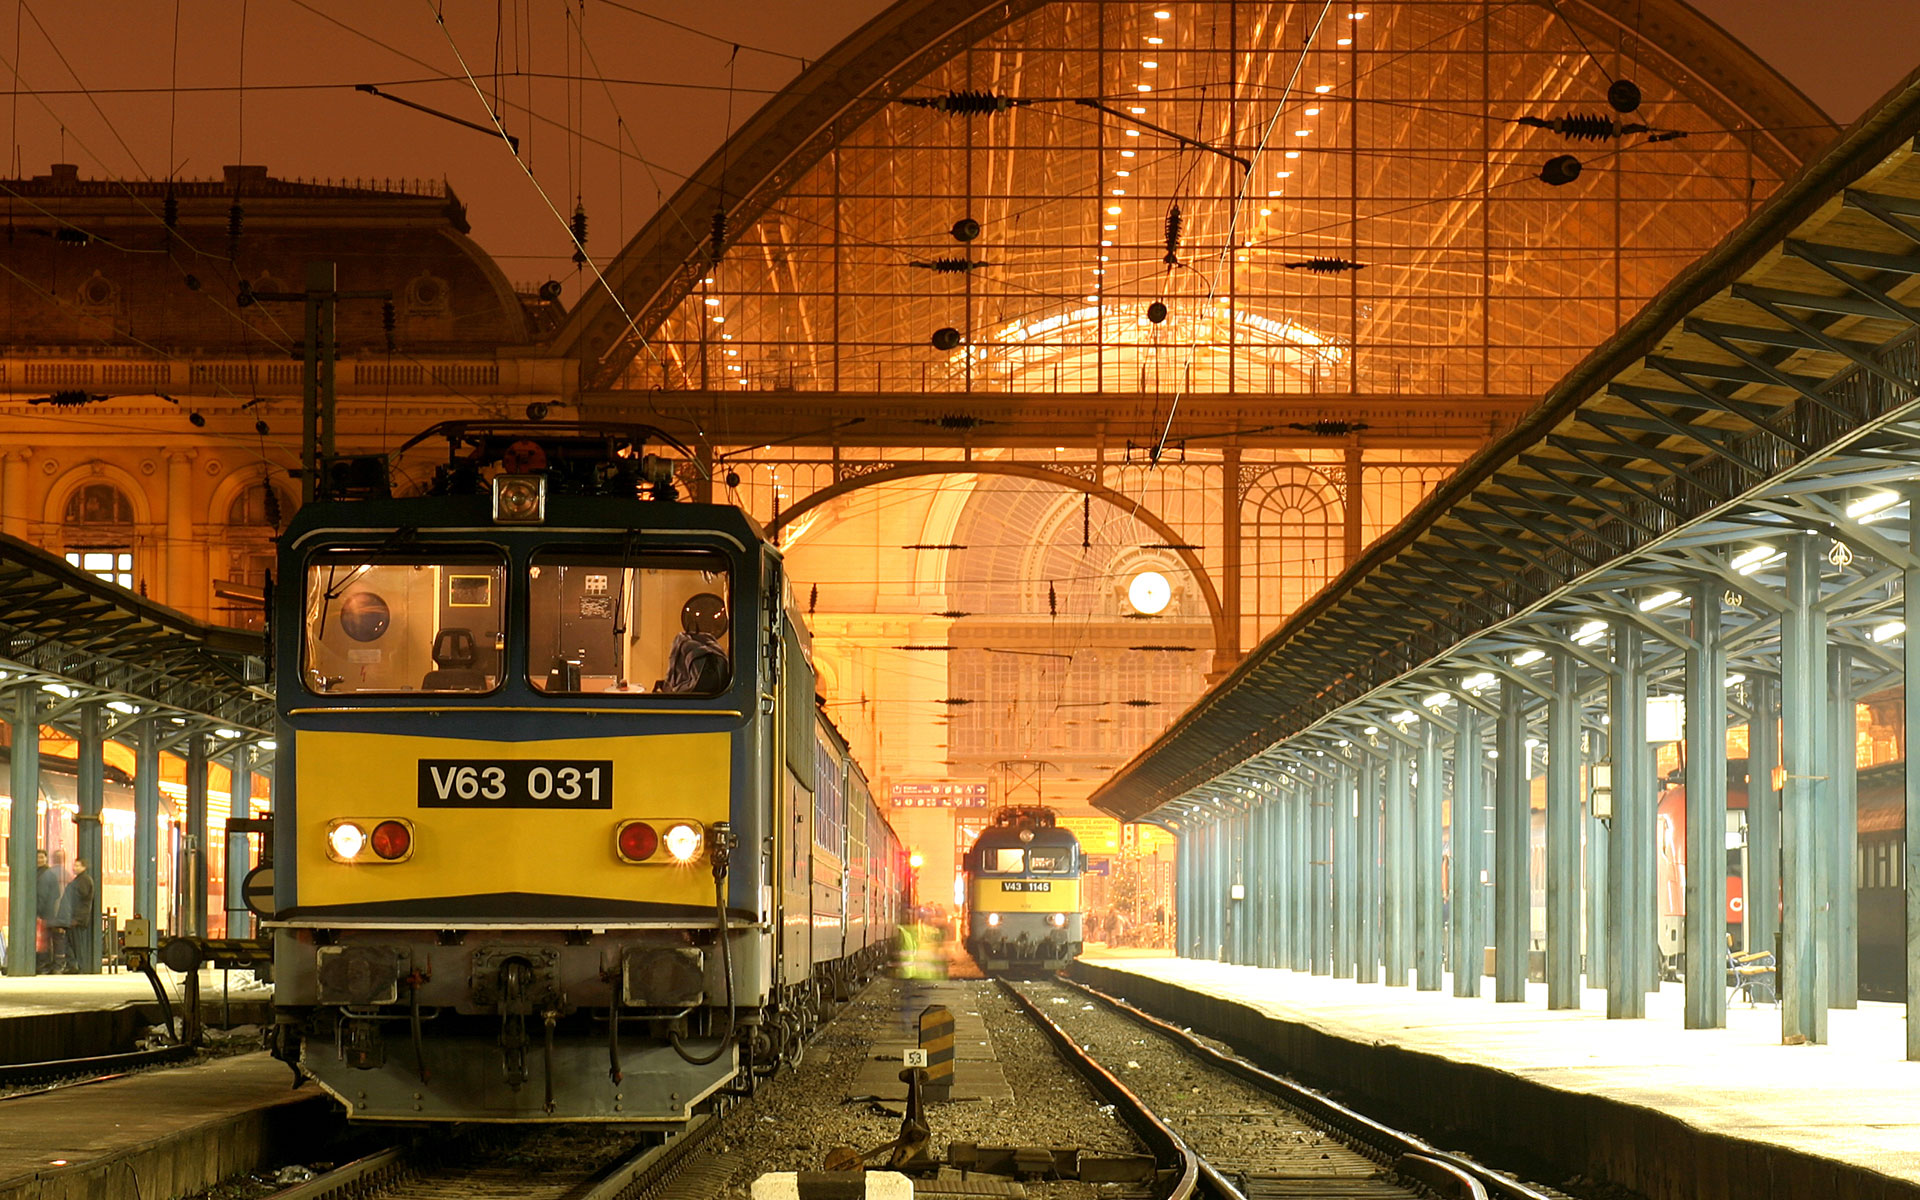 Europe By Rail Russia Suspends Direct Rail Services To Balkan Region